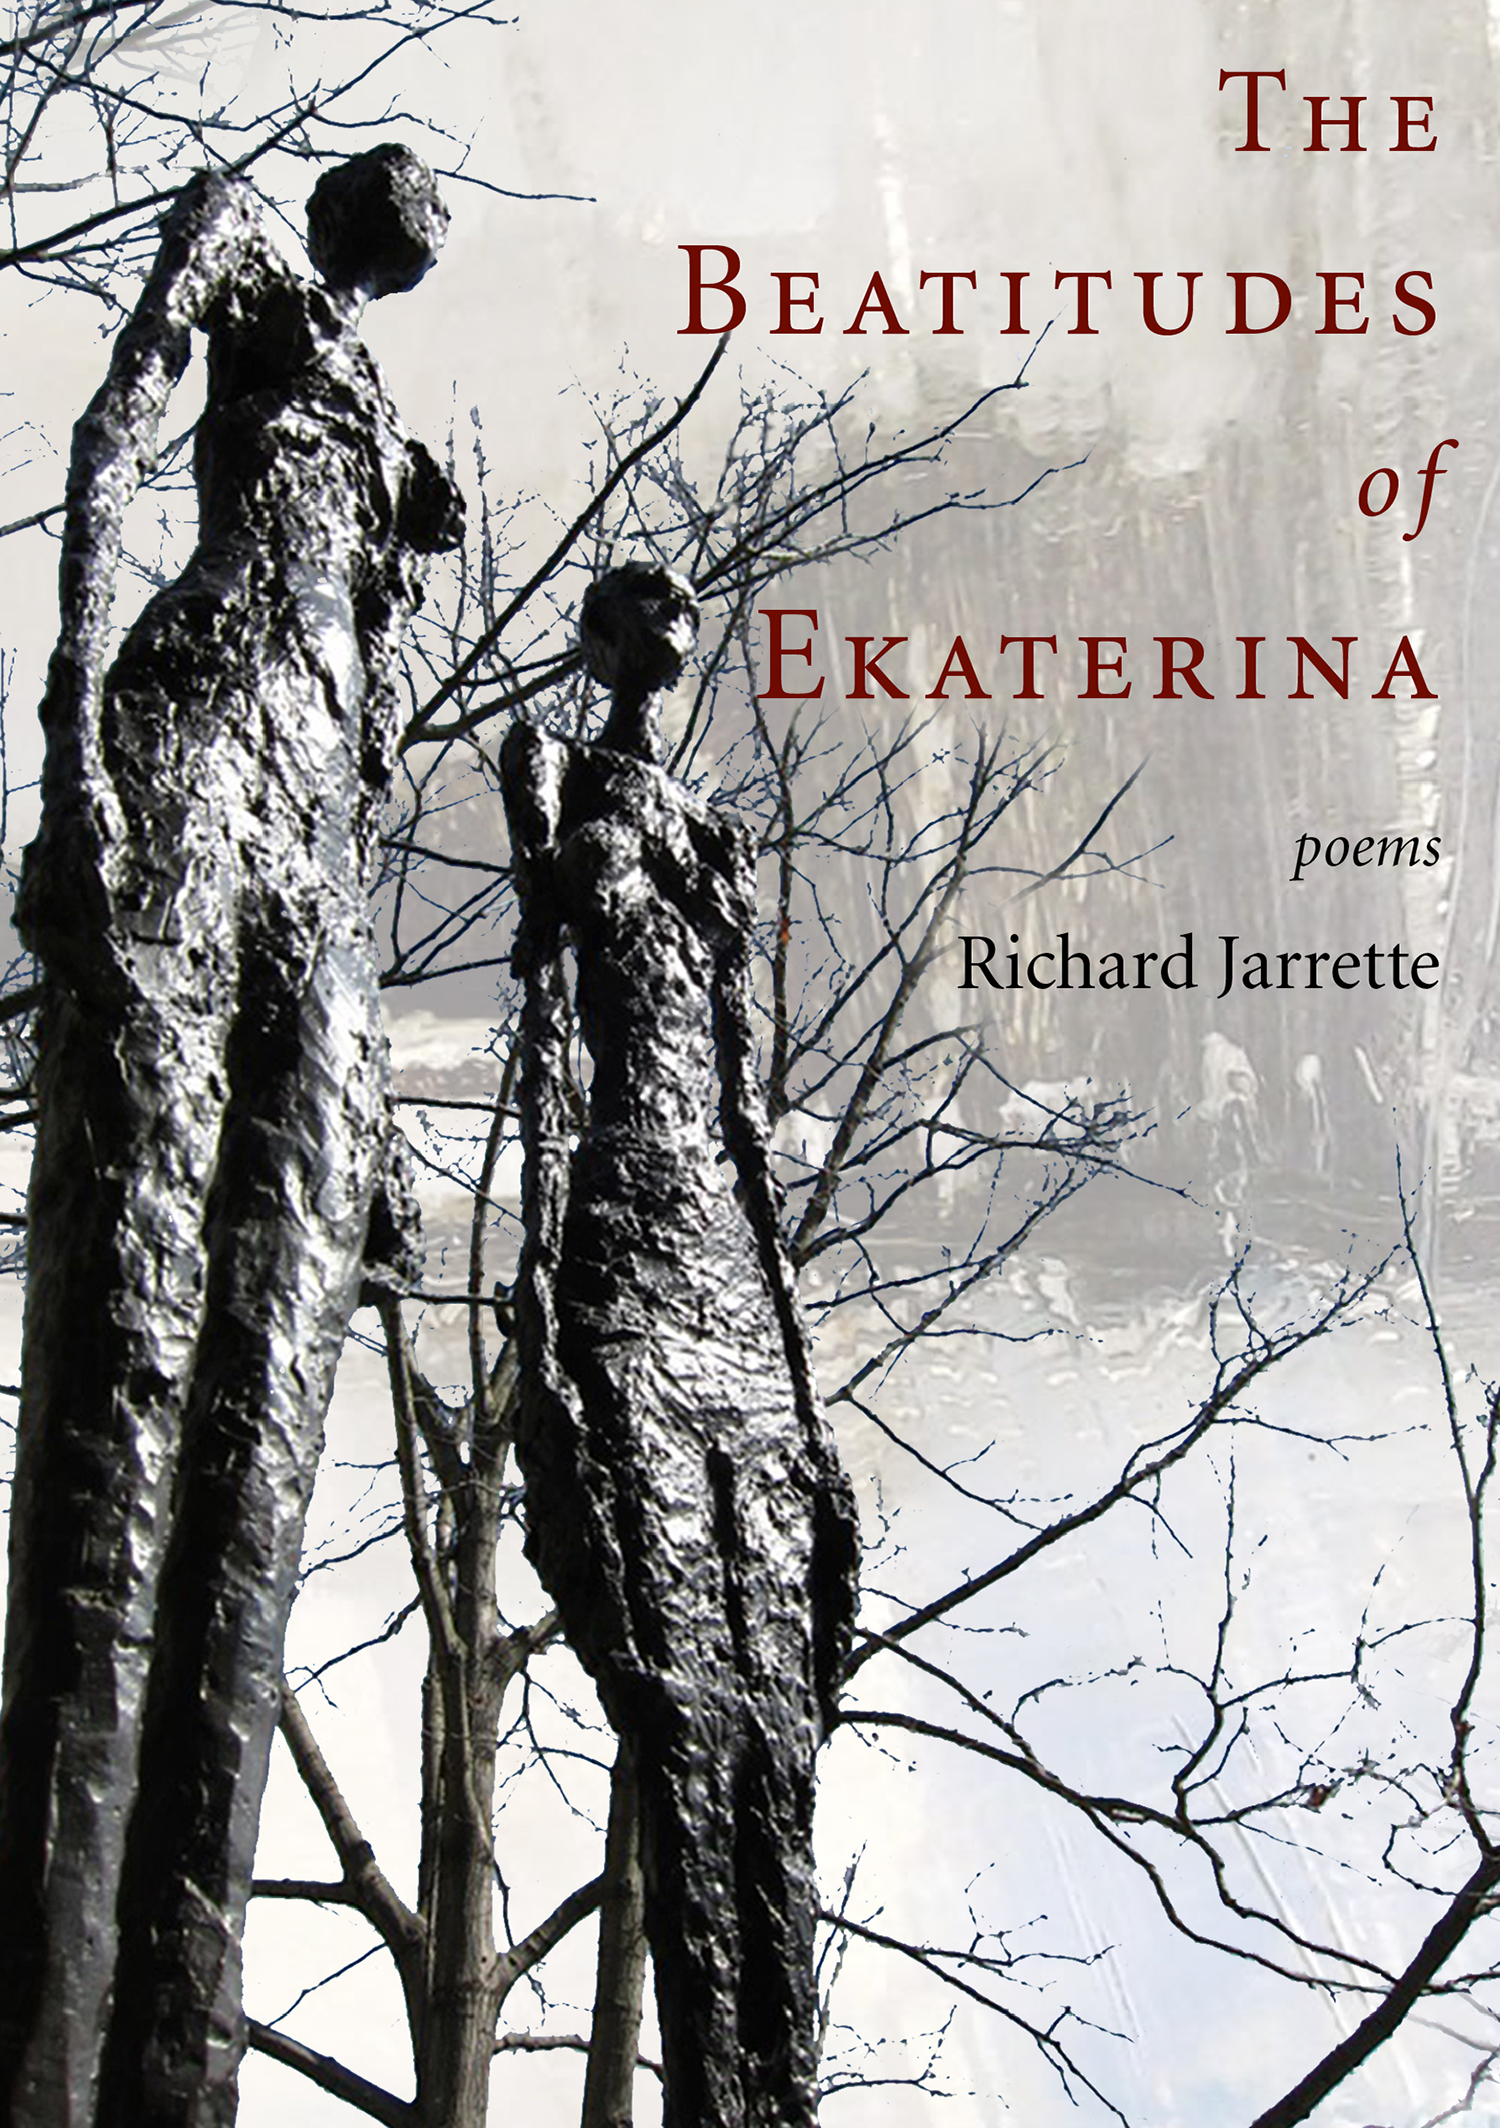 The Beatitudes of Ekaterina